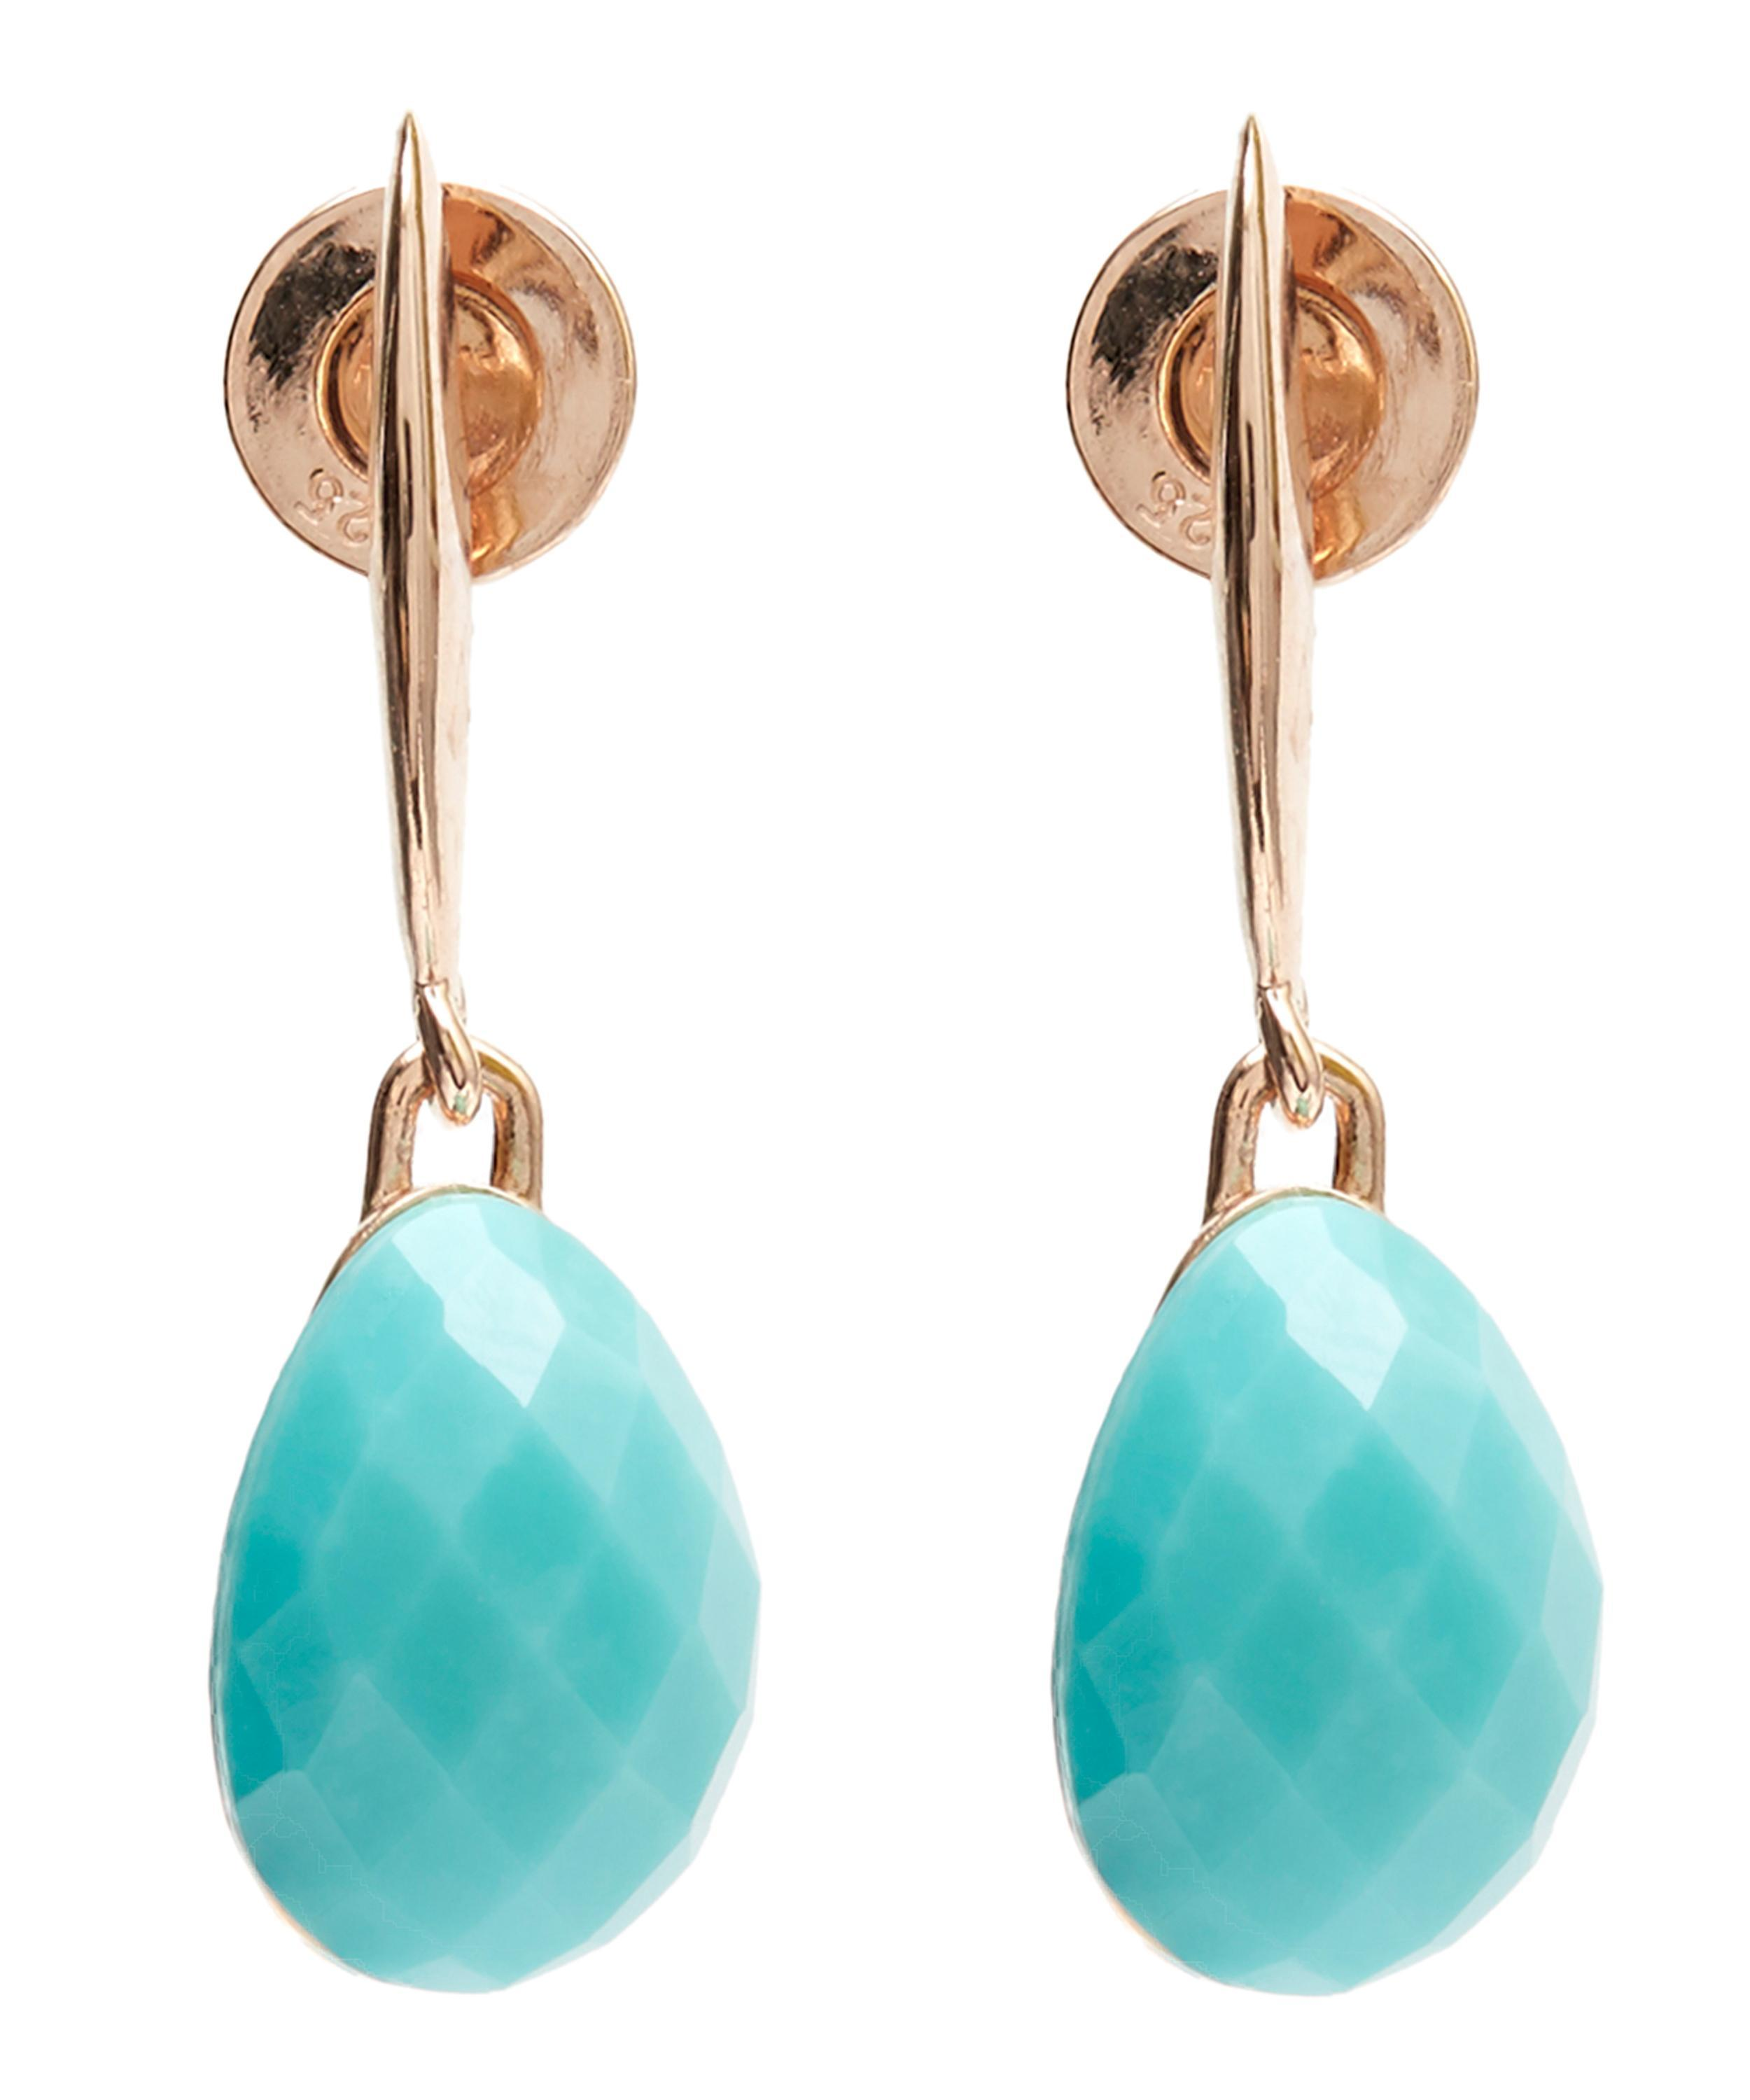 a24f42efb4fc2 Monica Vinader Blue Rose Gold Vermeil Nura Turquoise Small Teardrop Earrings